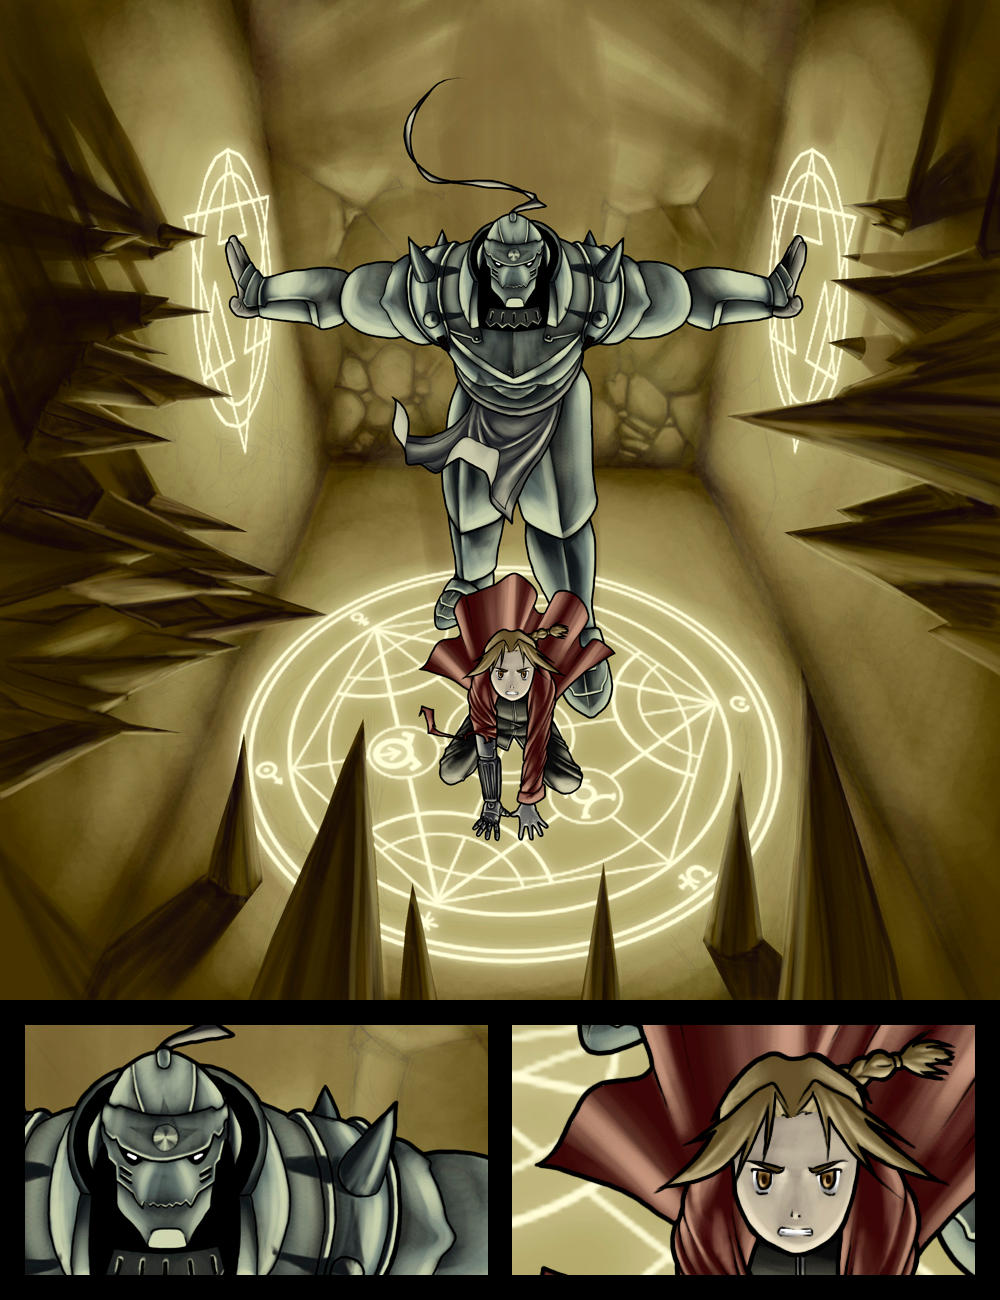 full metal alchemist by tillwolfster on full metal alchemist by tillwolfster full metal alchemist by tillwolfster